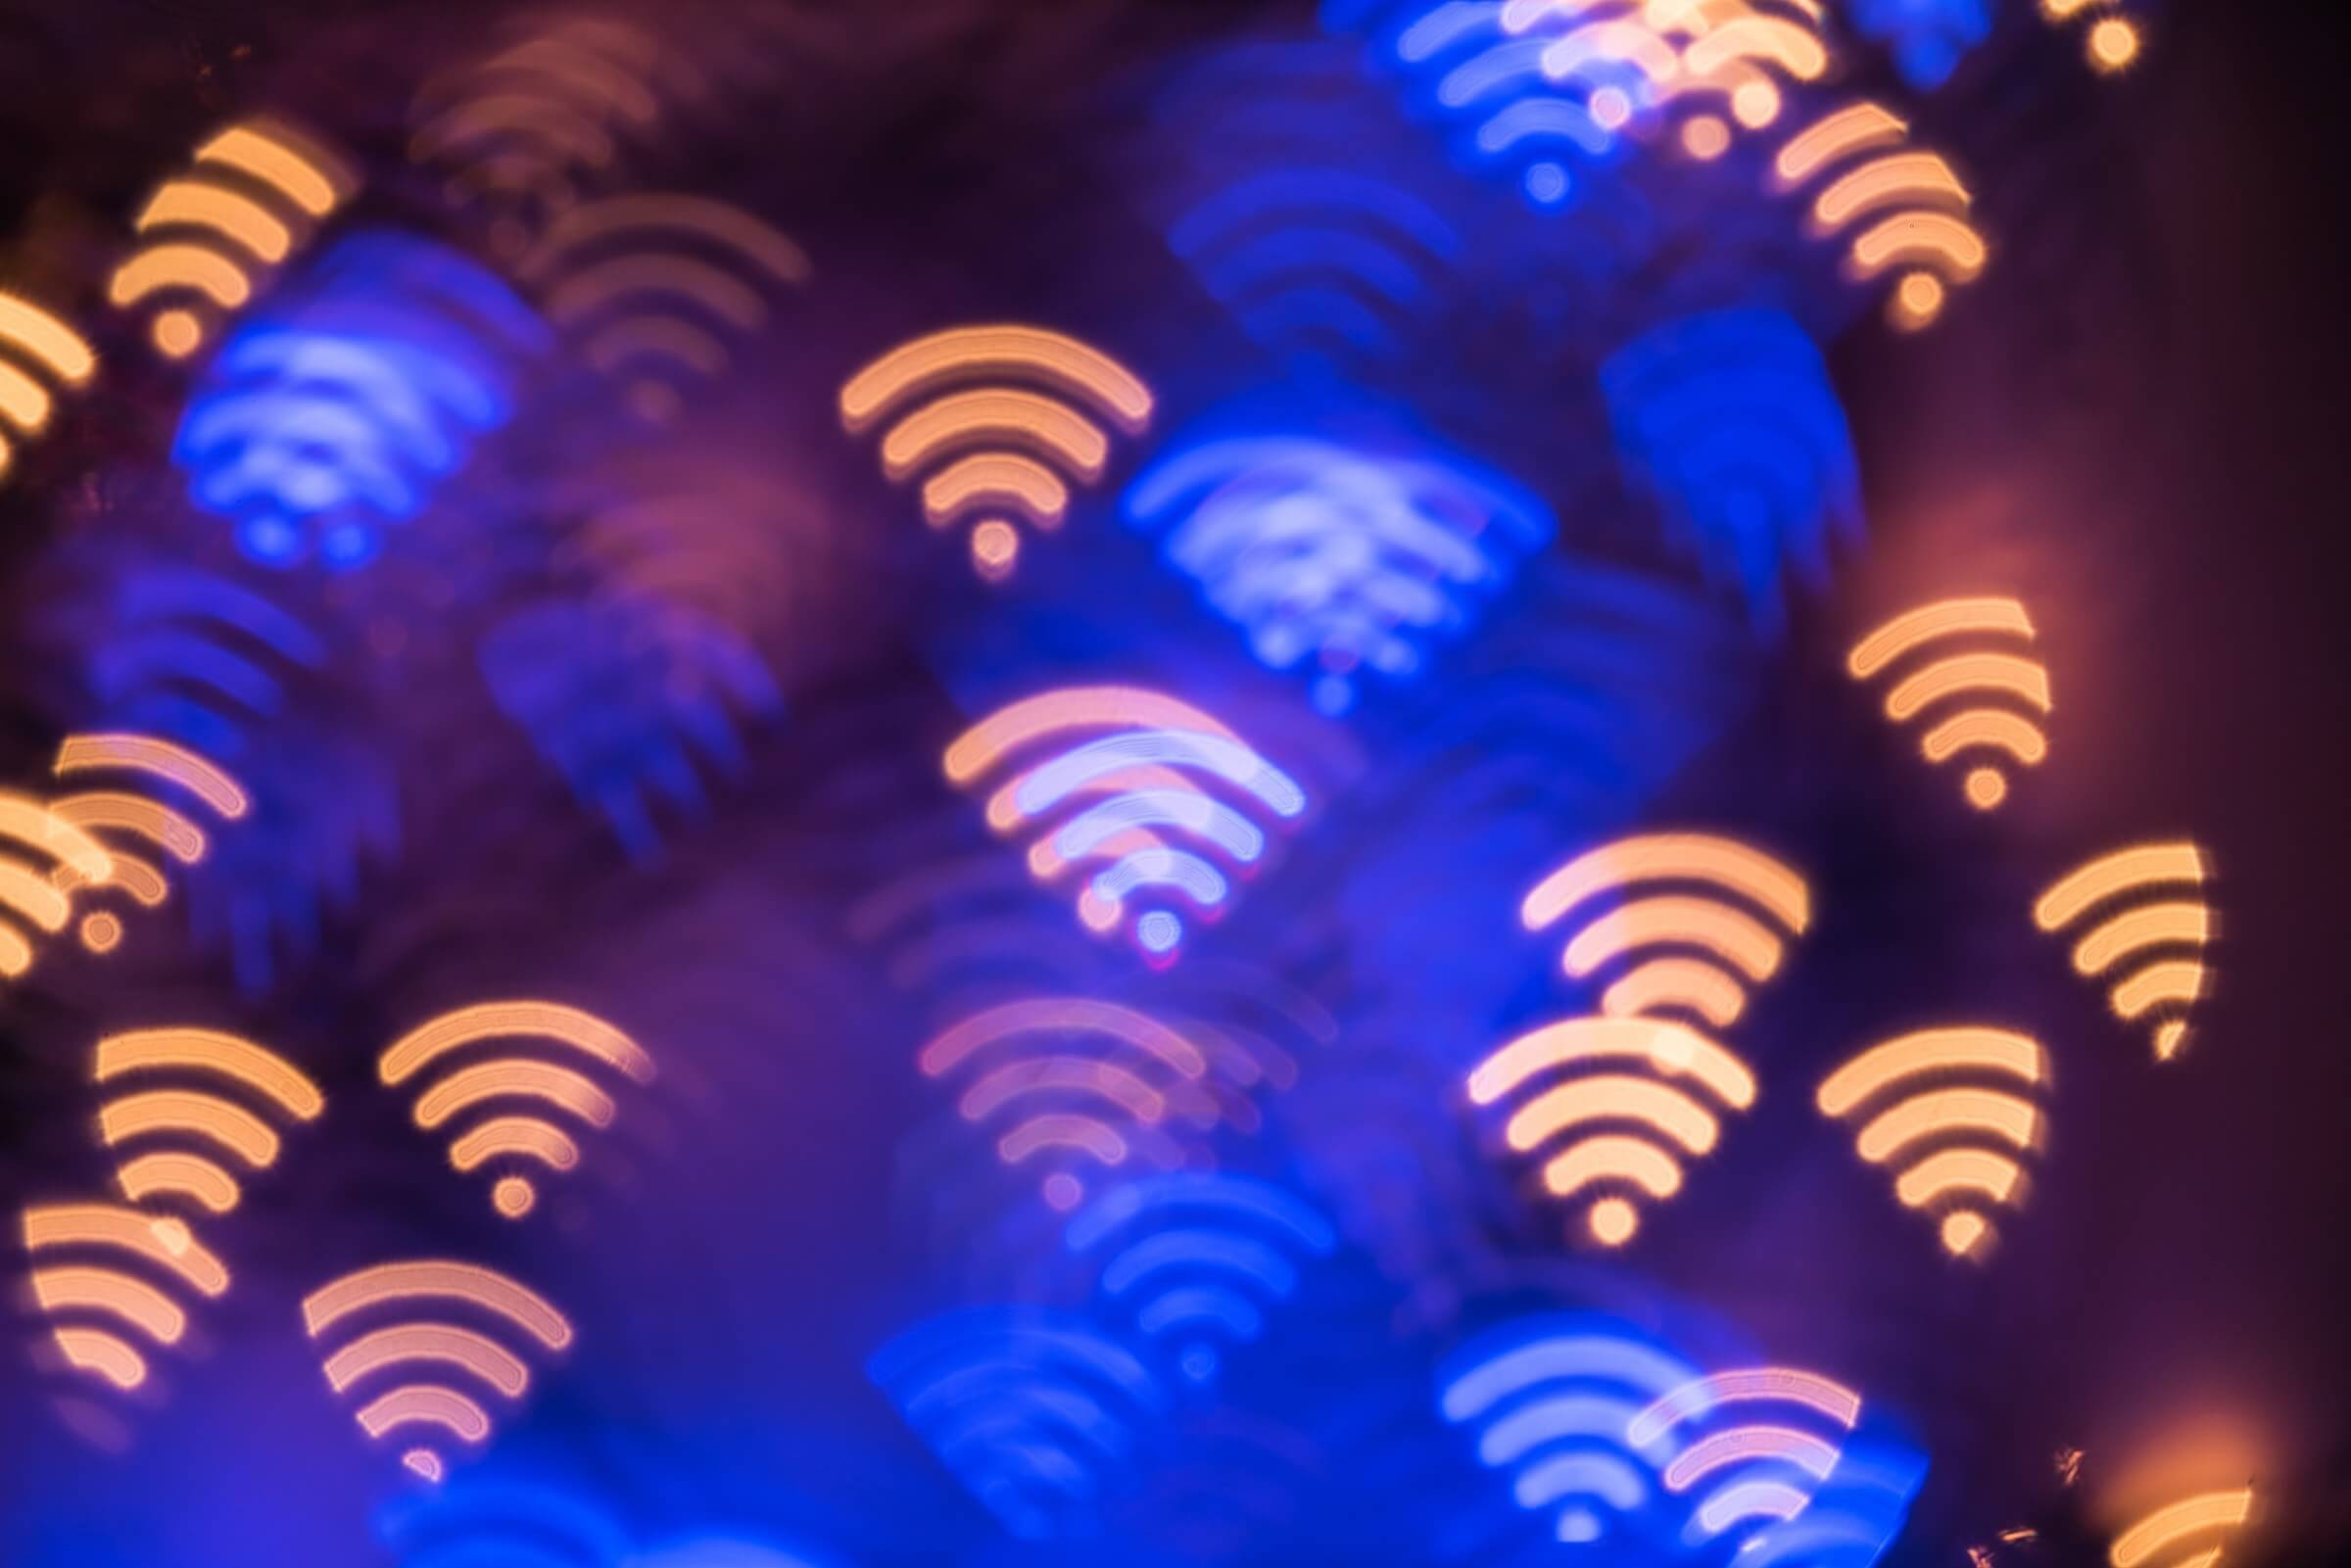 MIT's 2D antenna turns Wi-Fi signals into power